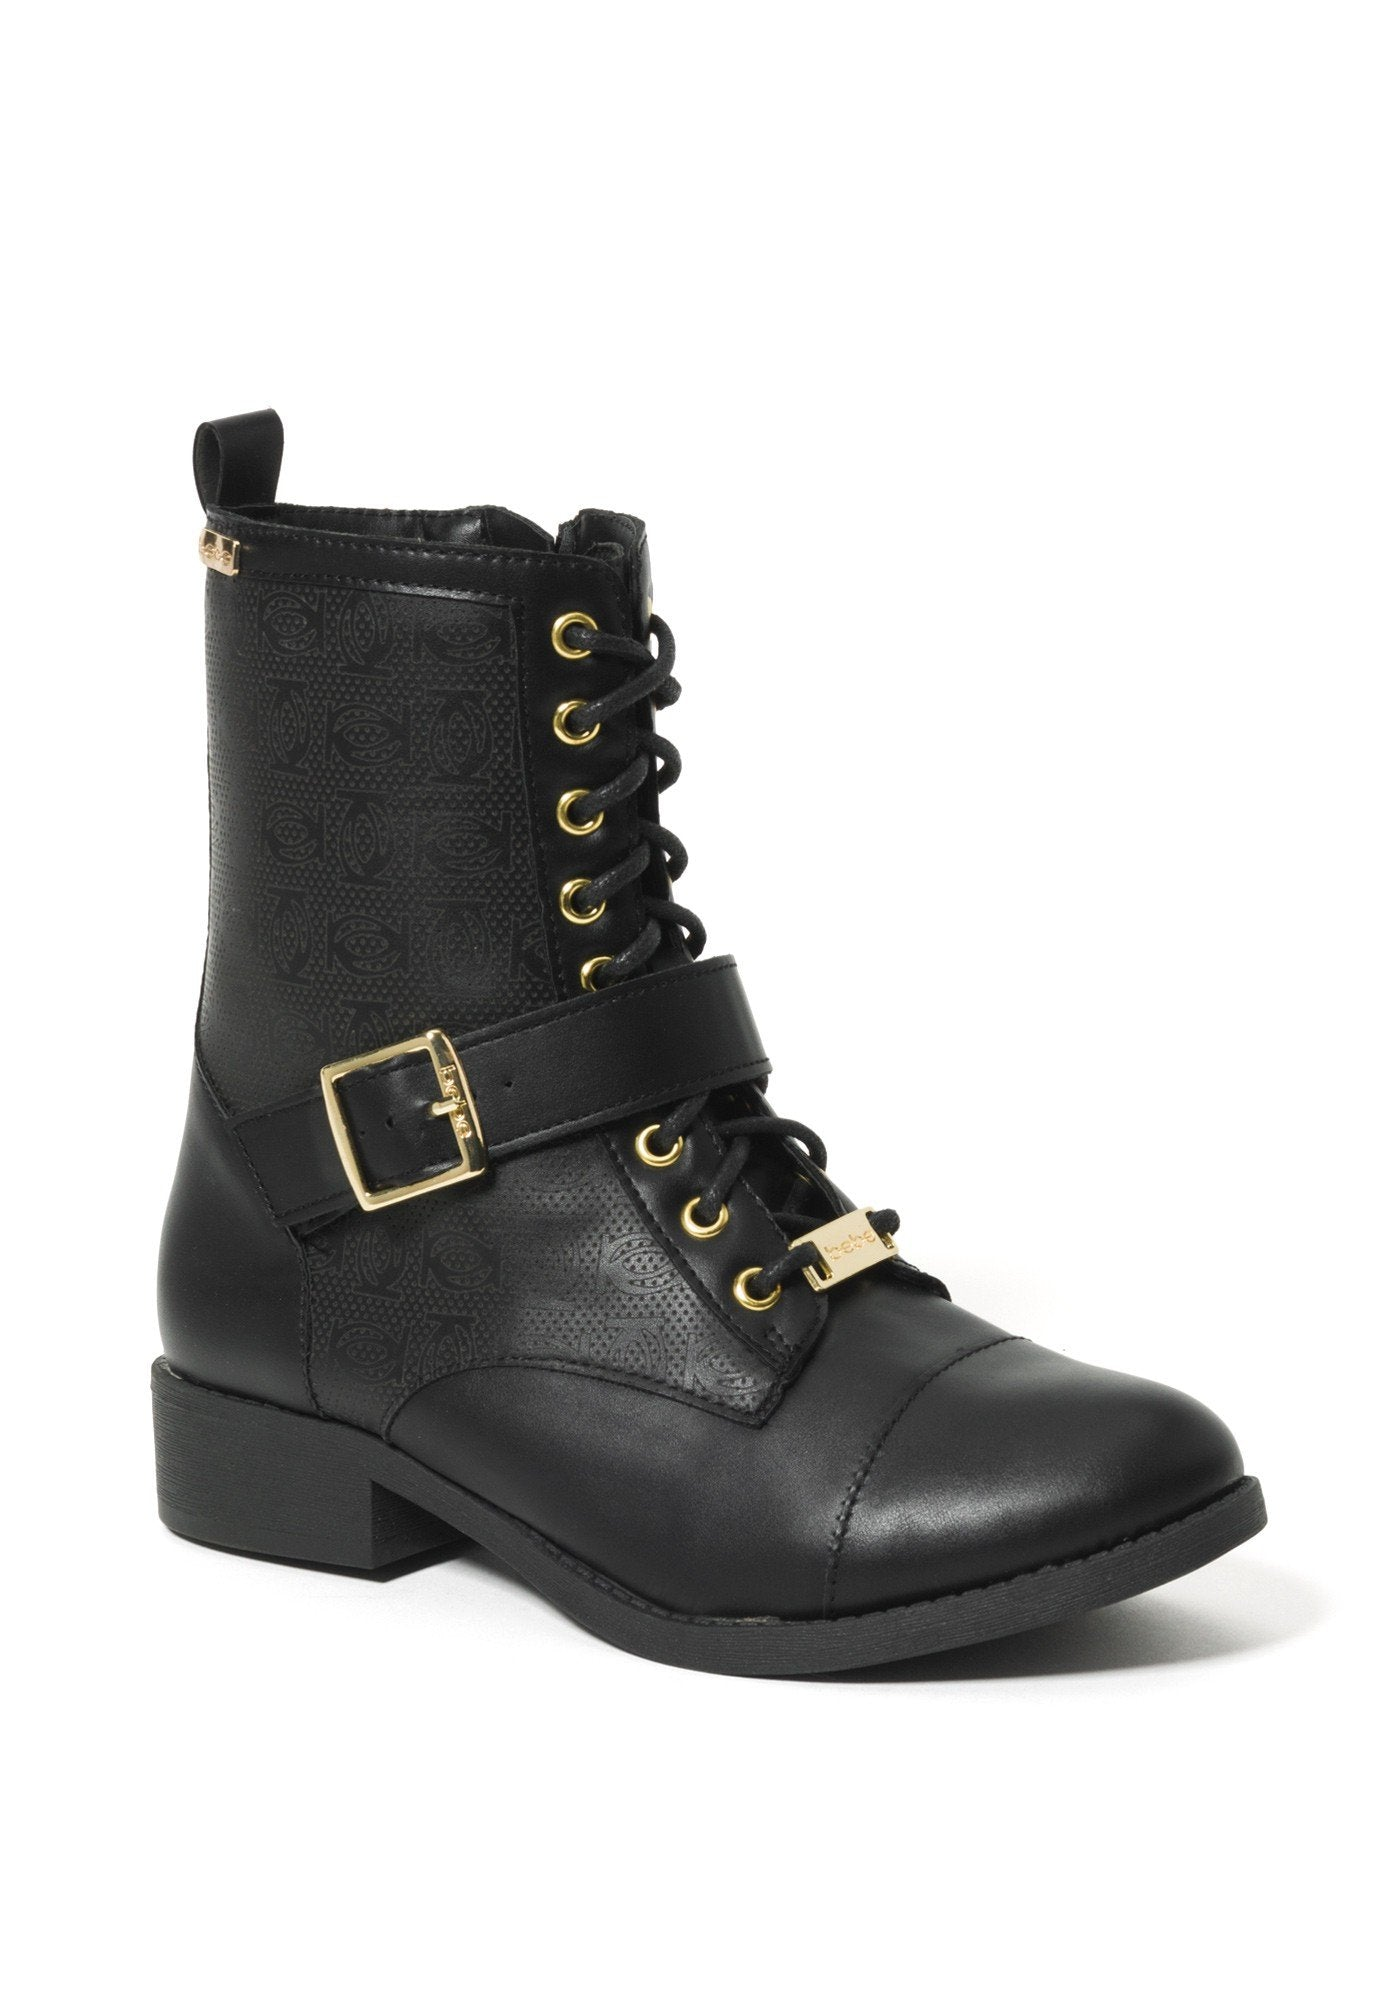 Bebe Women's Ofeibea Logo Ankle Boots, Size 6 in Black Synthetic